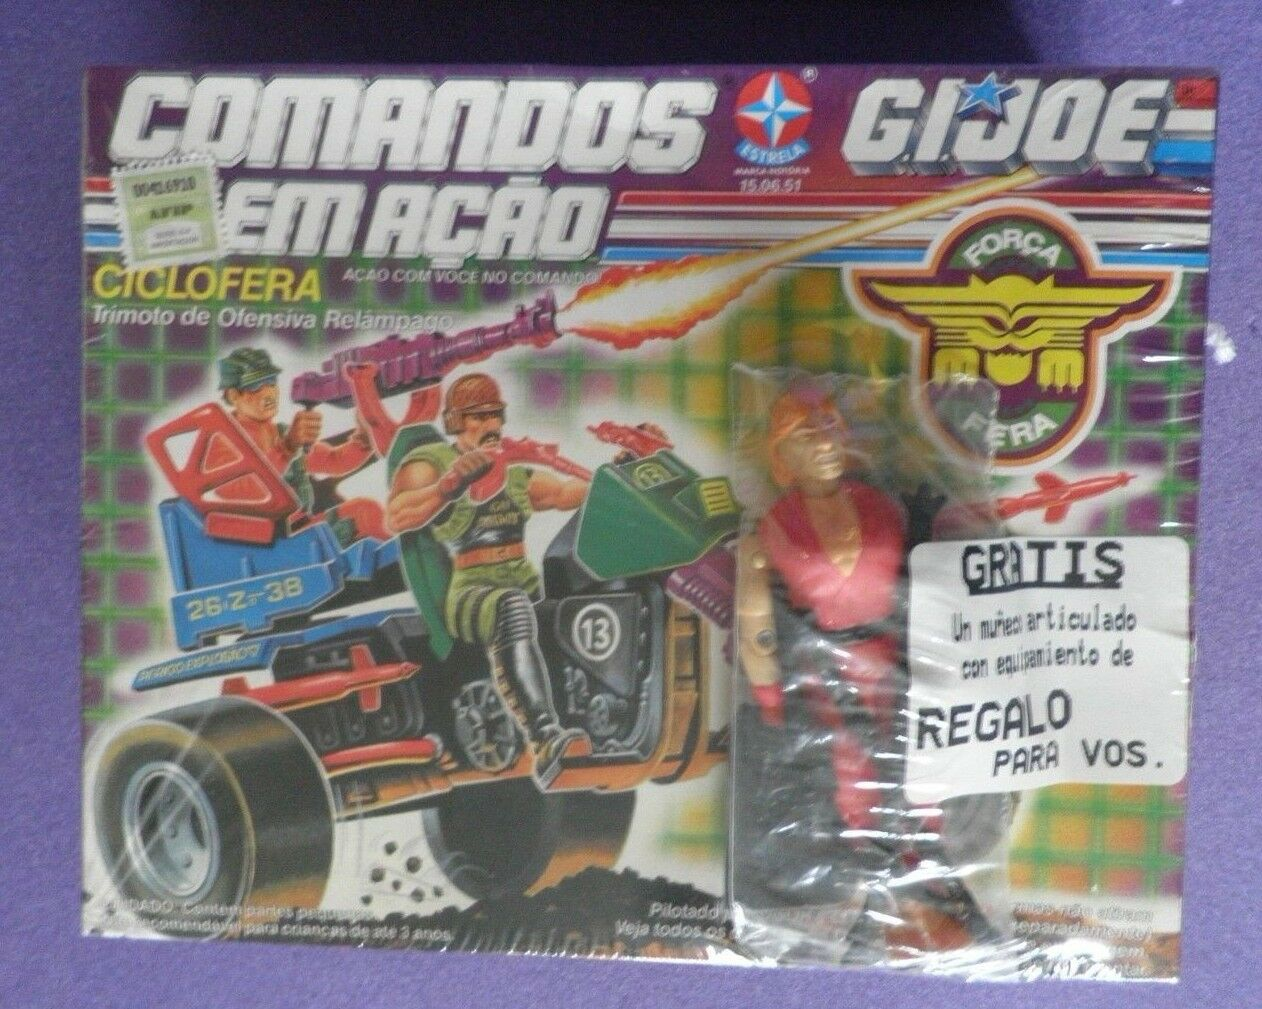 G.I.Joe - Comandos Emacao - Ciclofera + Ken Street Fighter Figure. 1993 F Sealed